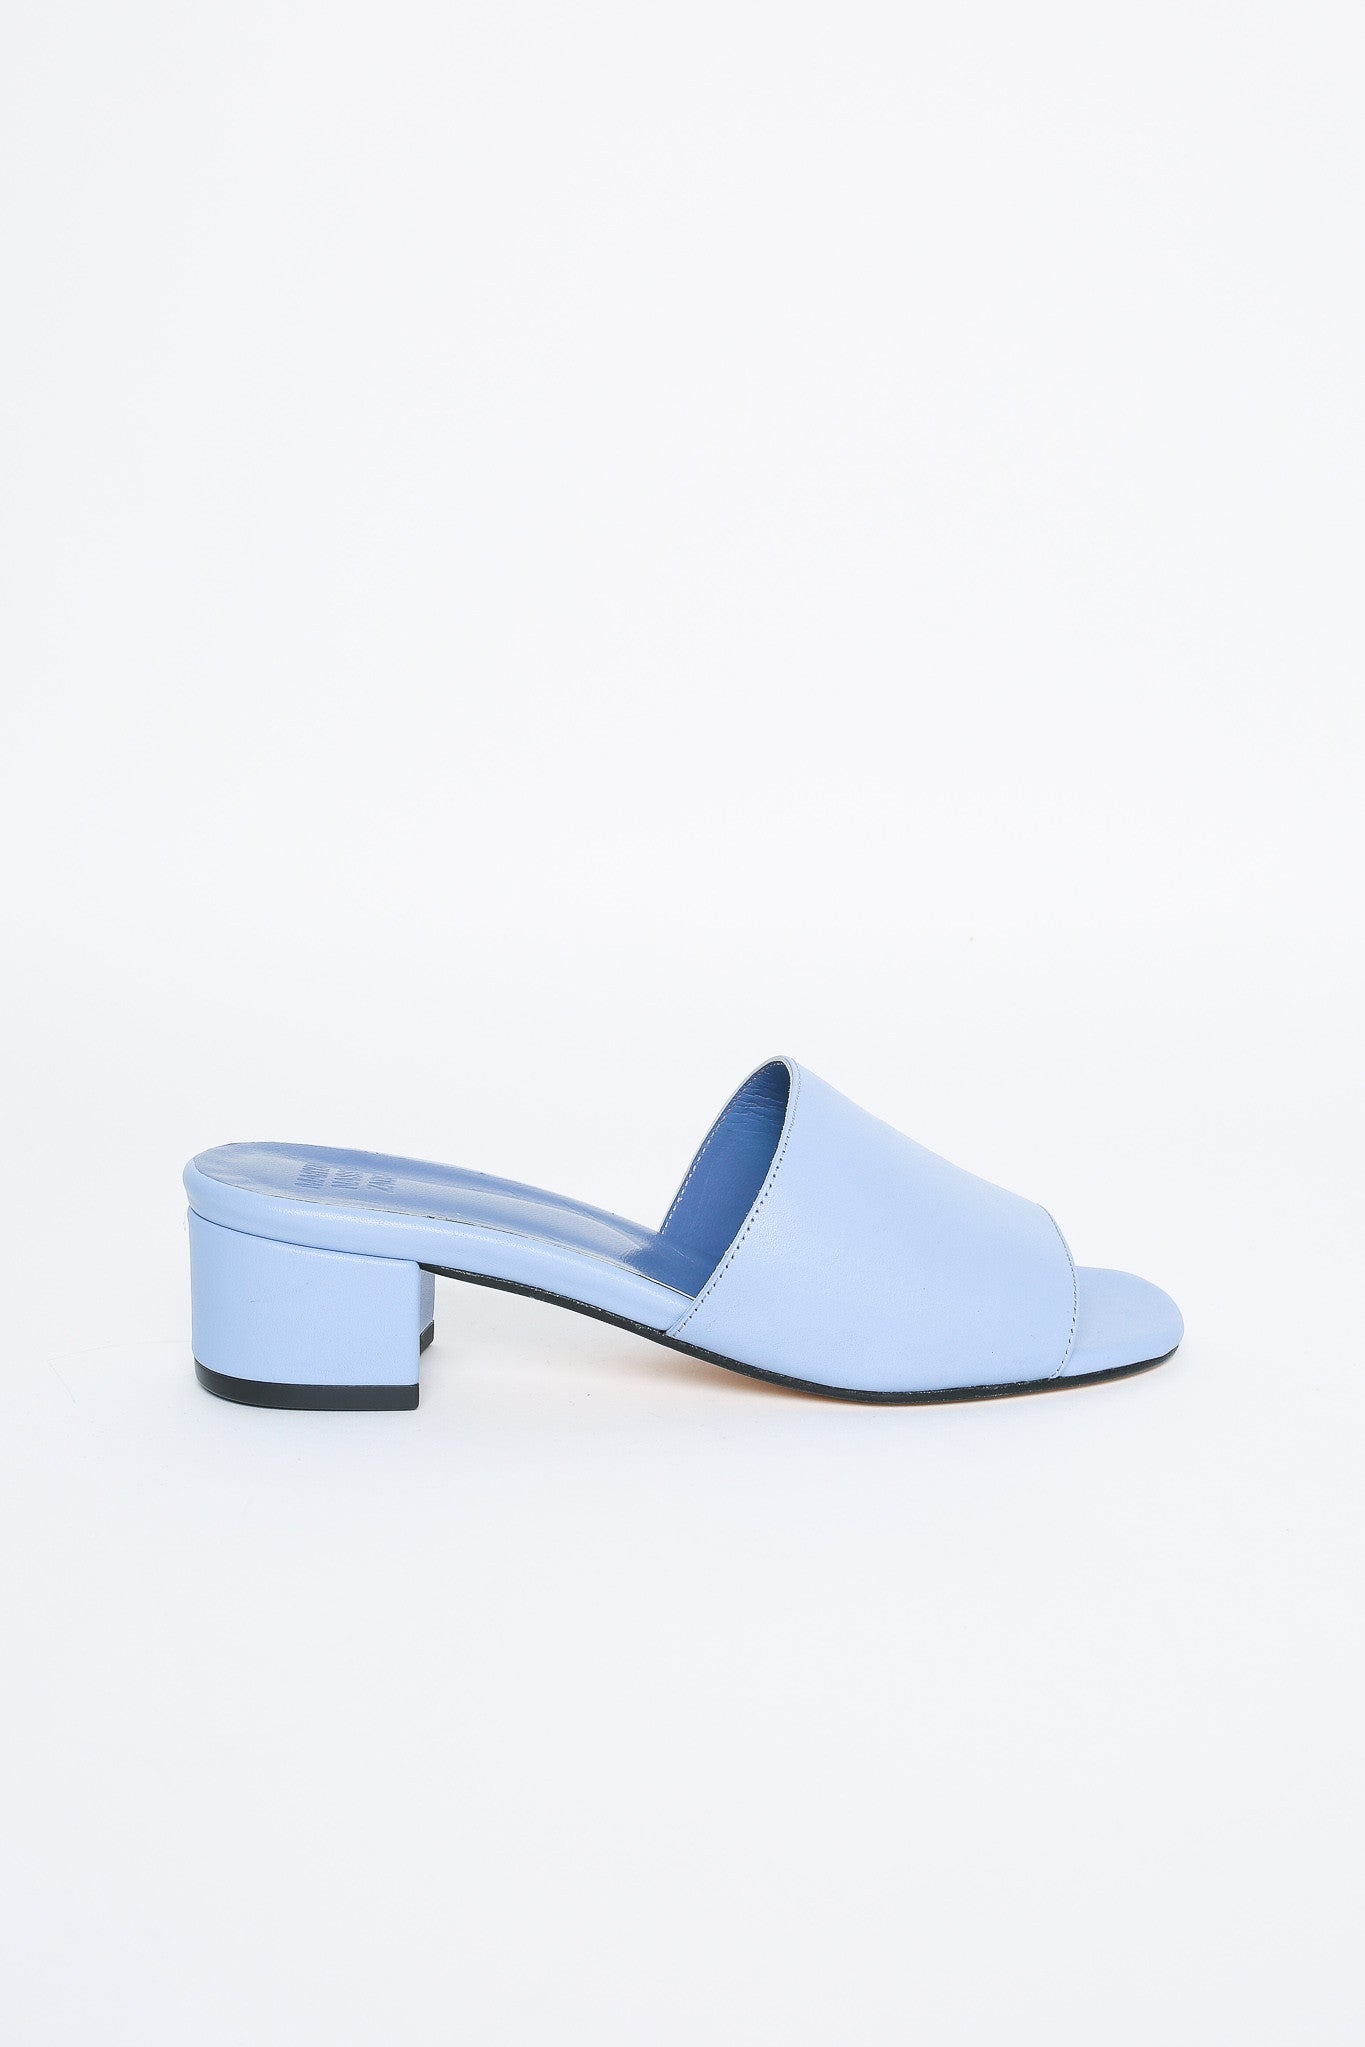 Sophie open toe mule in slate blue